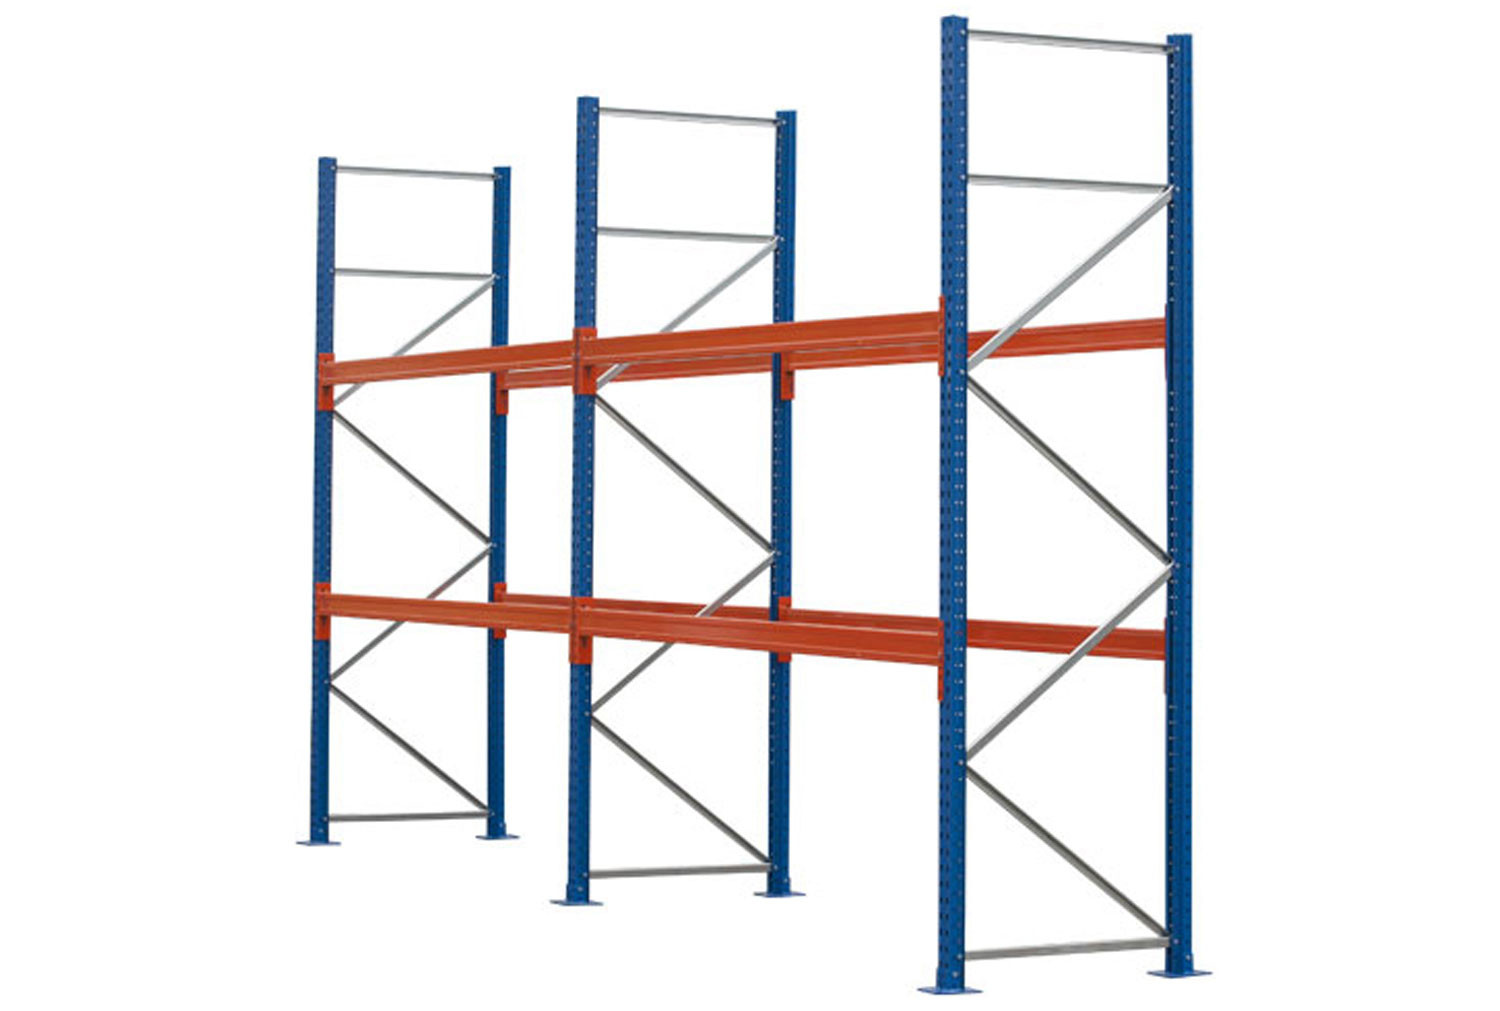 Pallet Racking Kit For 18 Pallets 5717wx3000h